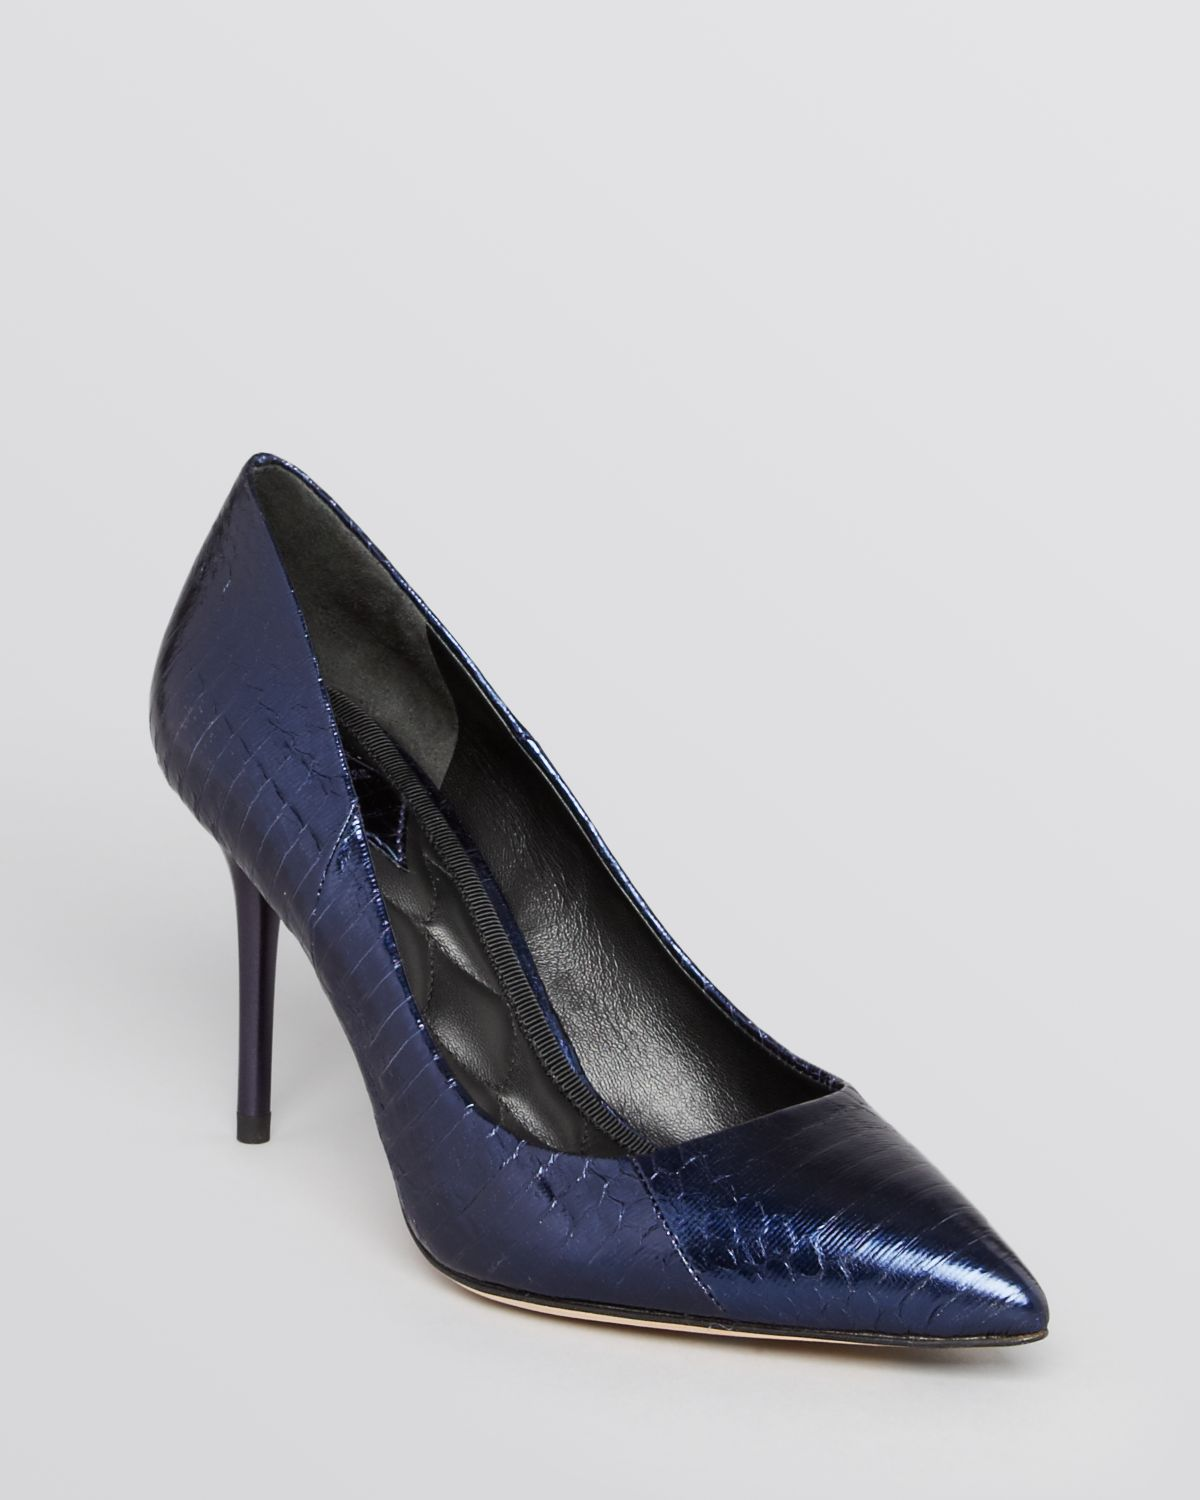 B brian atwood Pointed Toe Pumps - Malika High Heel in Blue | Lyst